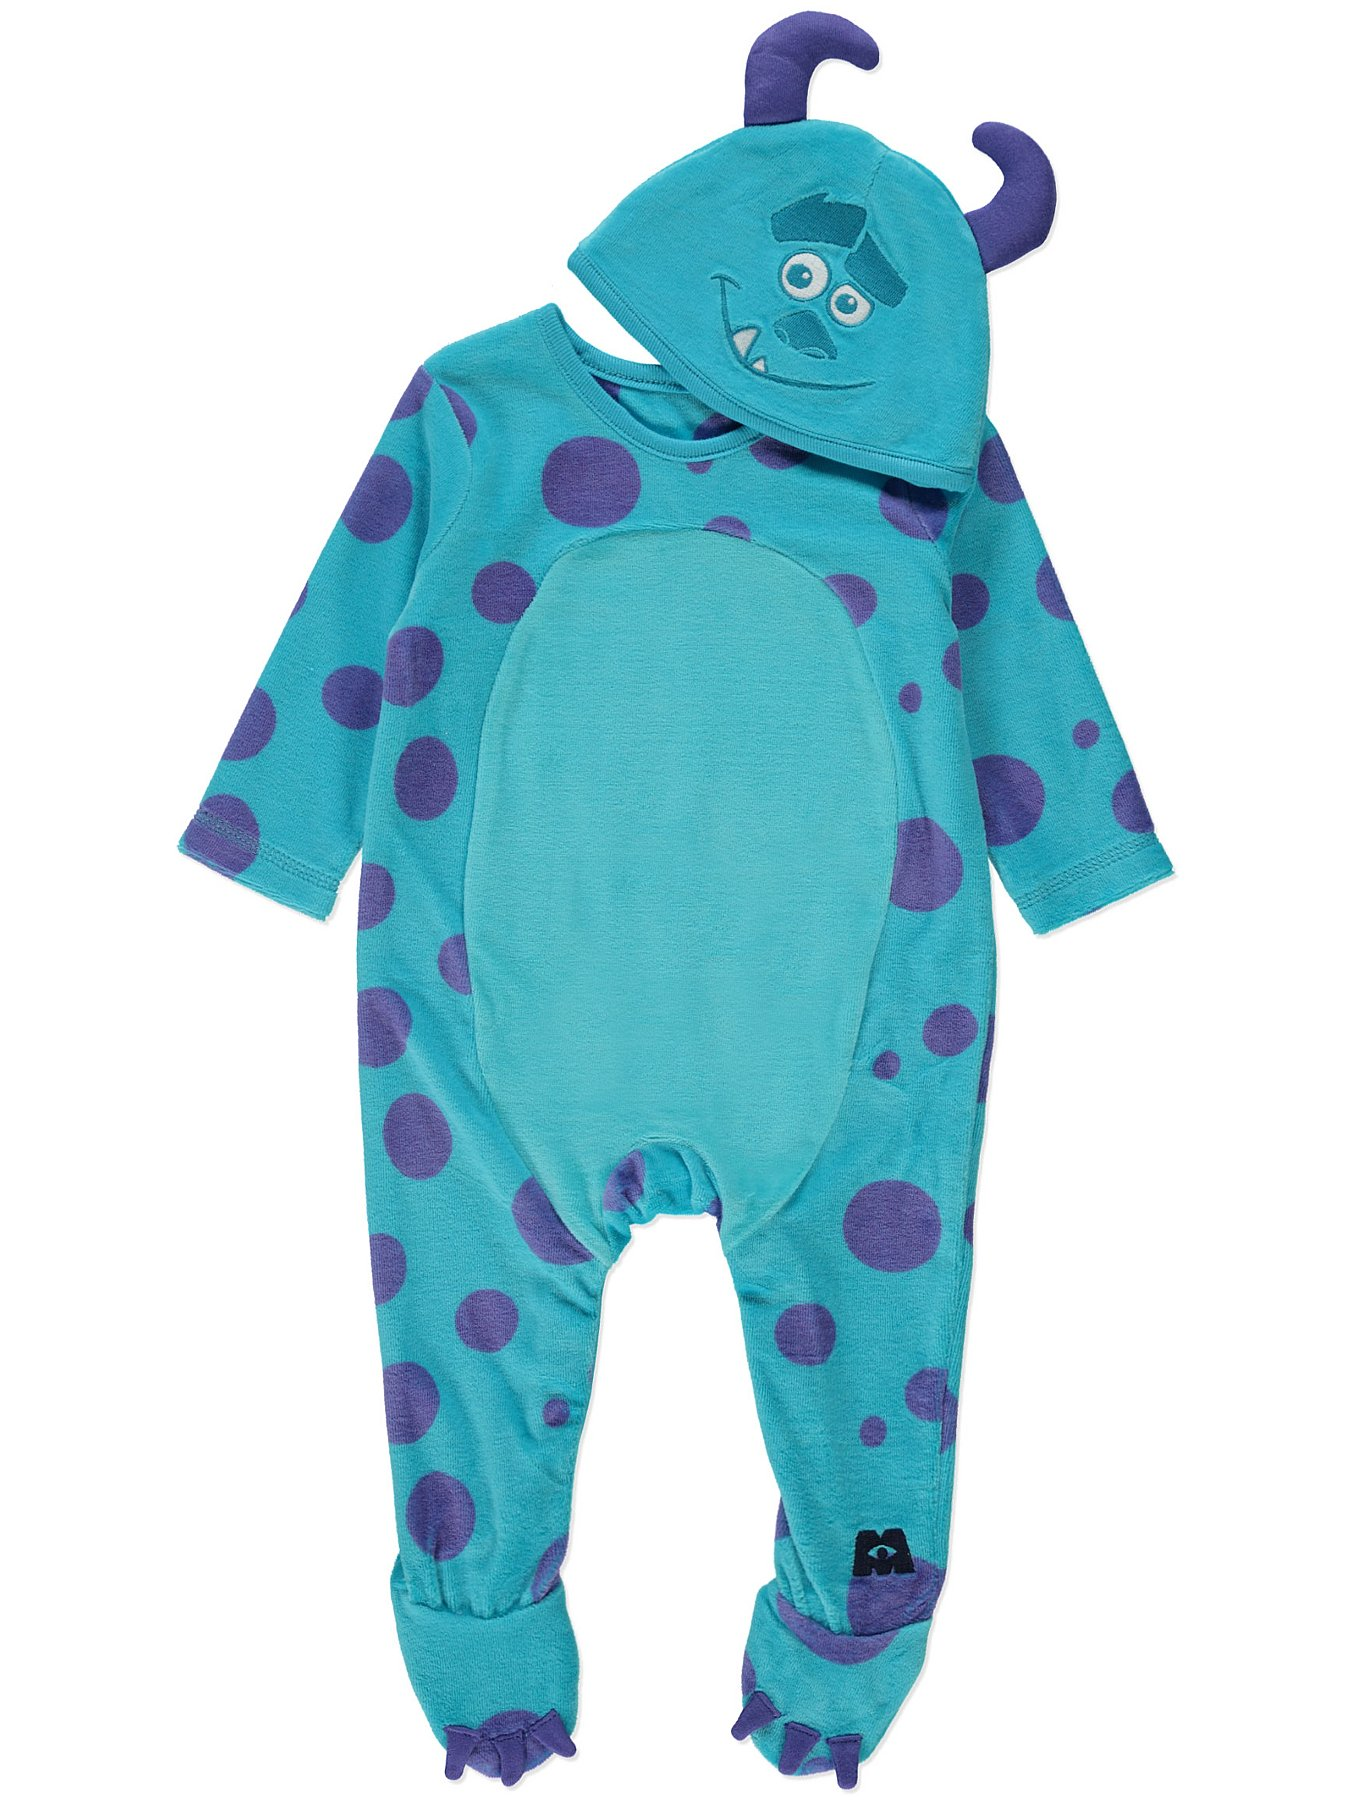 Disney Monsters Inc Sully All in One | Baby | George